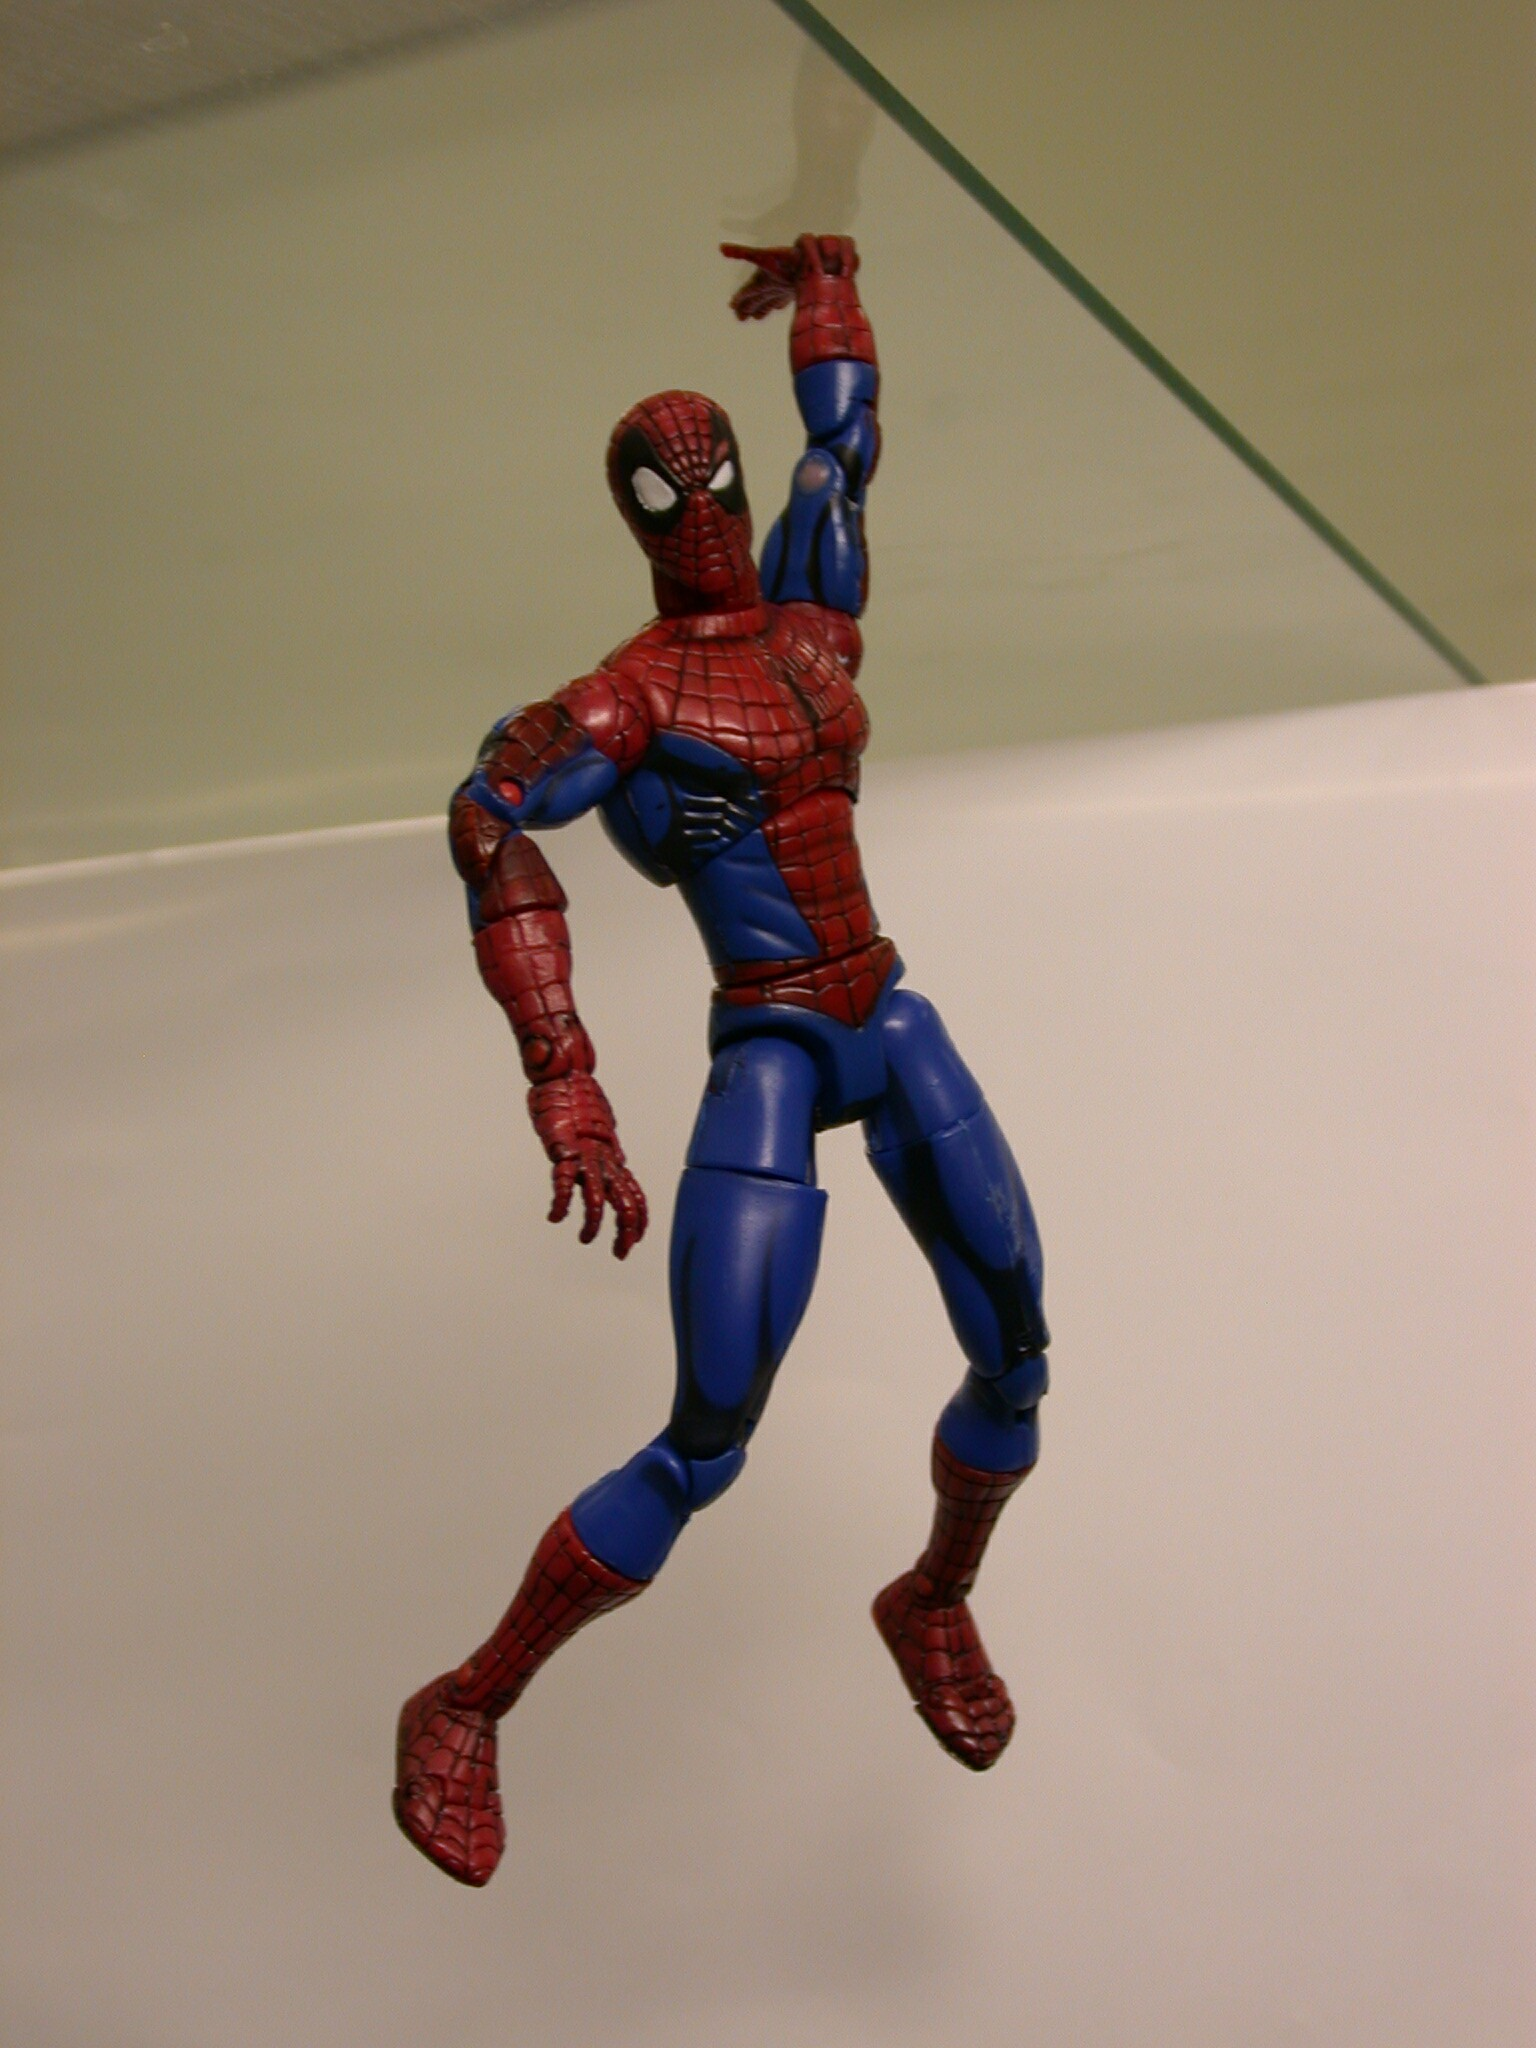 Spiderman toy hanging from a glass plate, attached using the tape with a contact area of approximately 0.5cm2 with a carry load of >100g. This toy has been attached to several surfaces before this photo was taken.